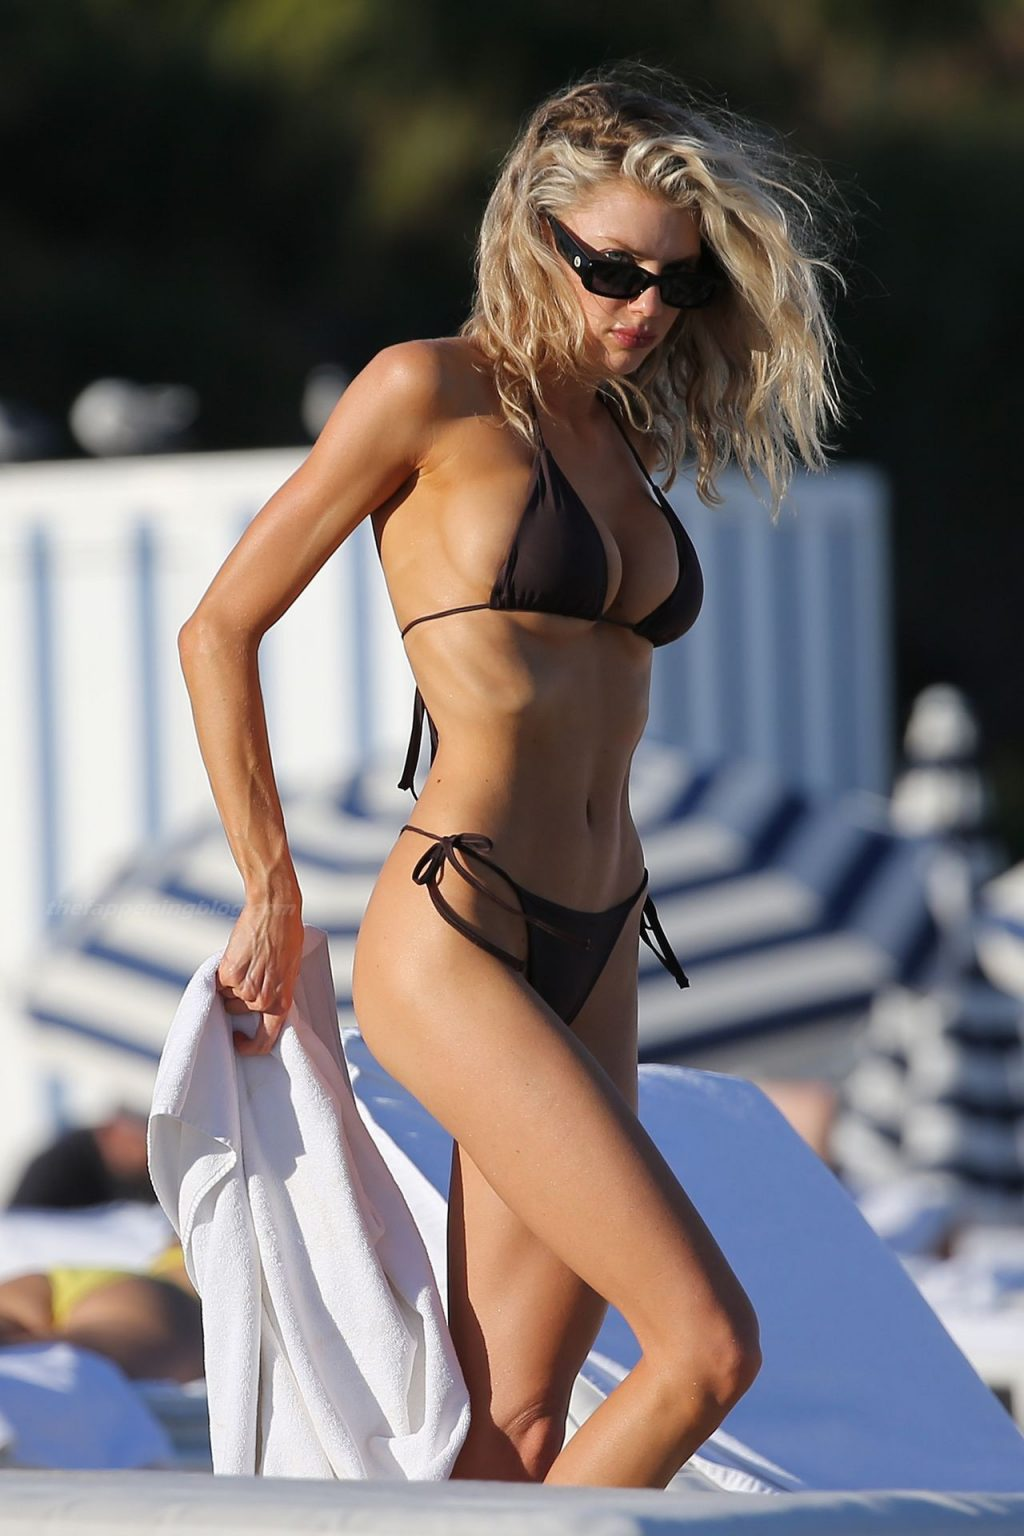 Charlotte Mckinney Shows Off Her Amazing Body on the Beach in Miami (18 Photos)